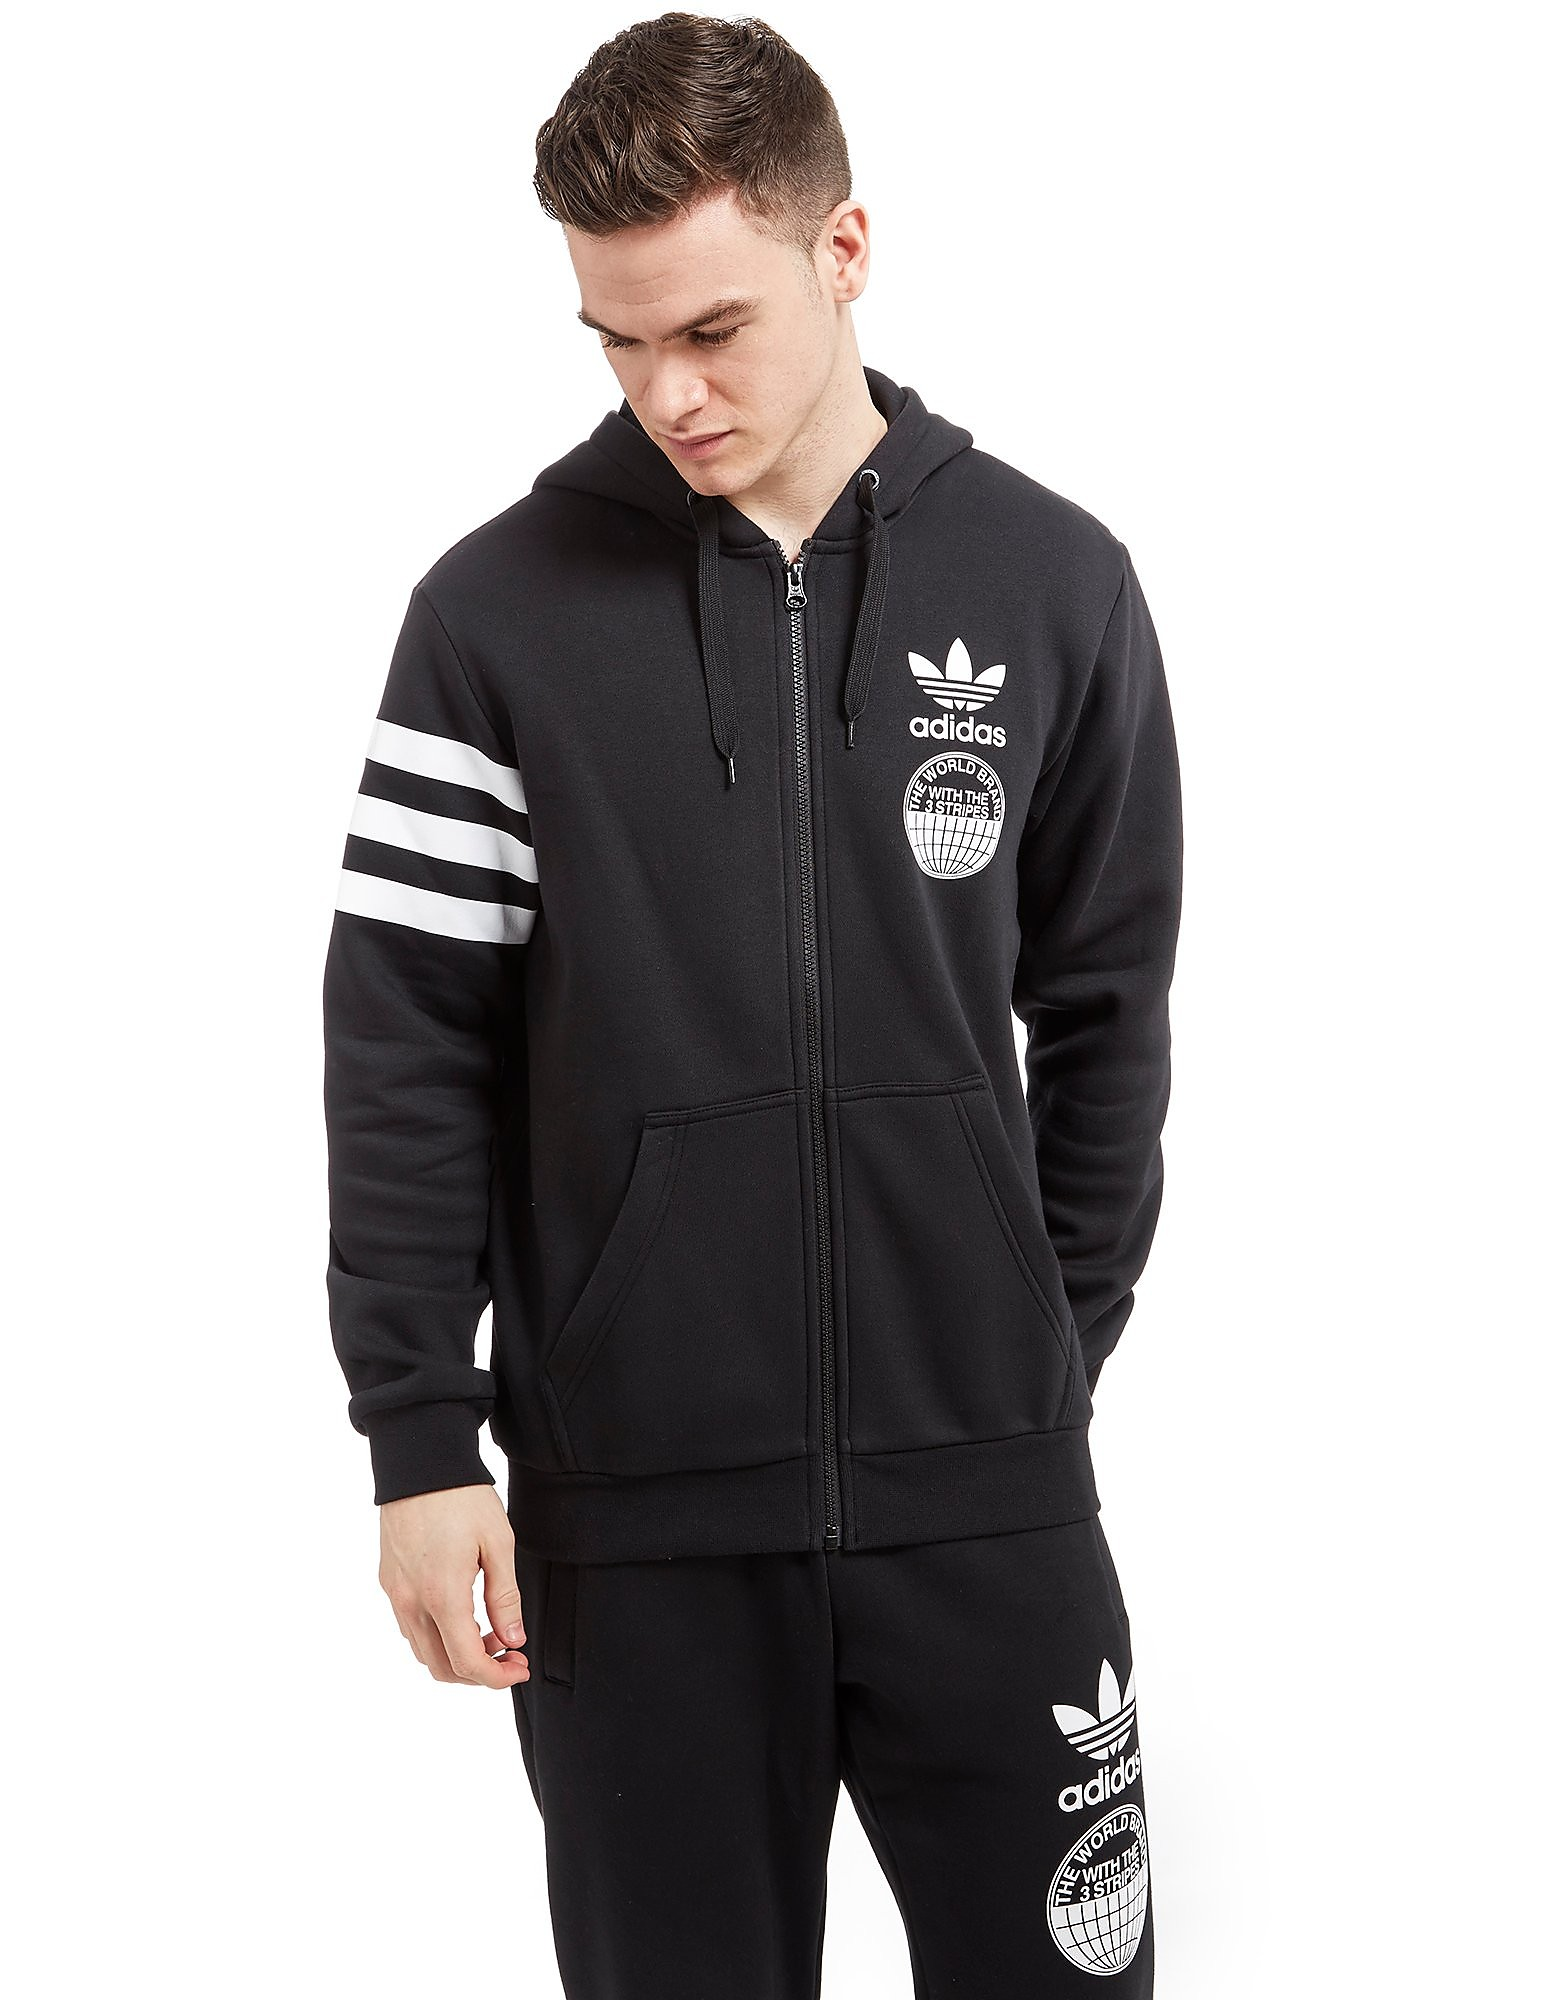 adidas Originals Global Full Zip Hoody